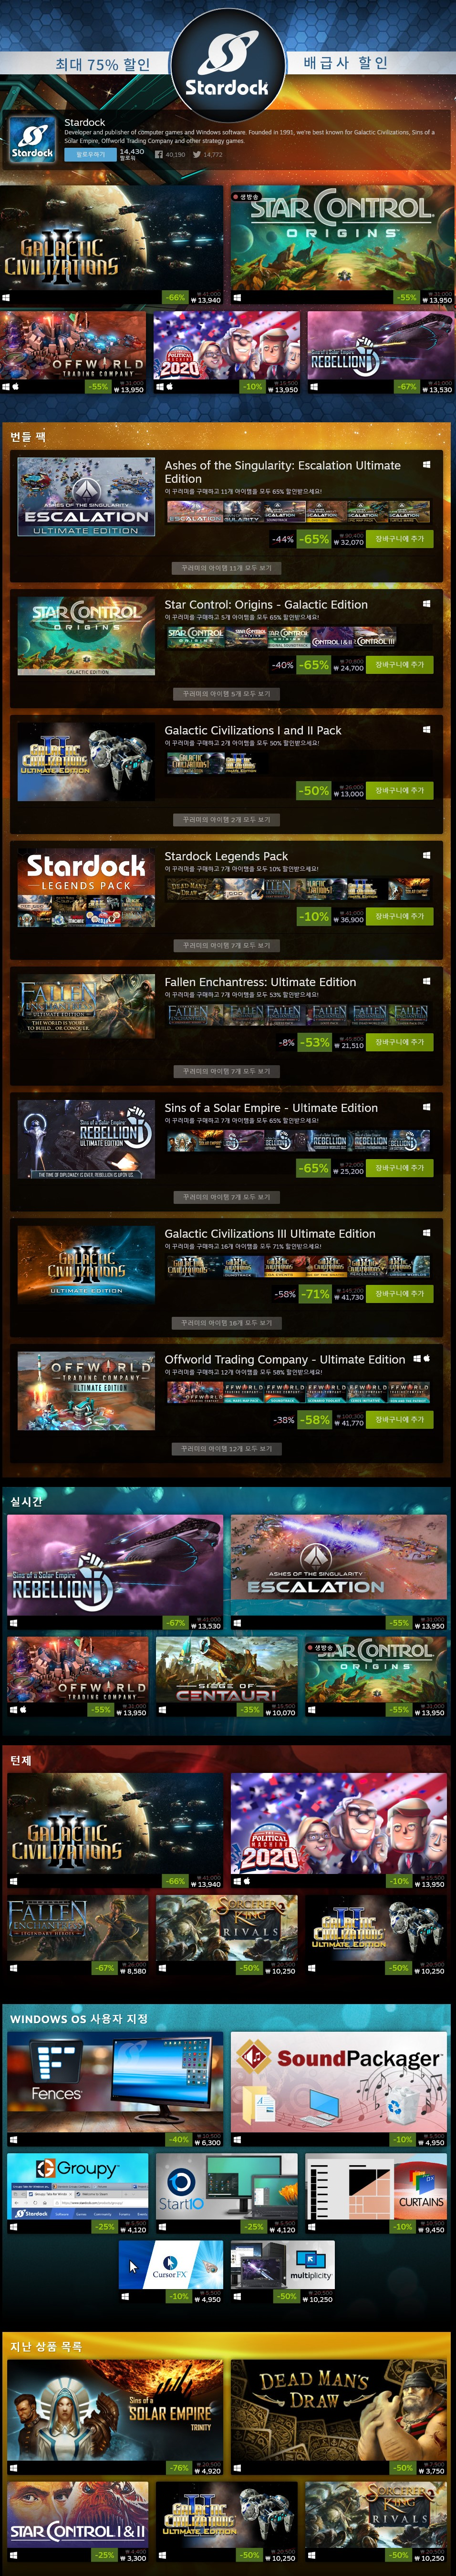 Screenshot_2020-09-23 Save up to 75% during the Stardock Publisher Sale.jpg